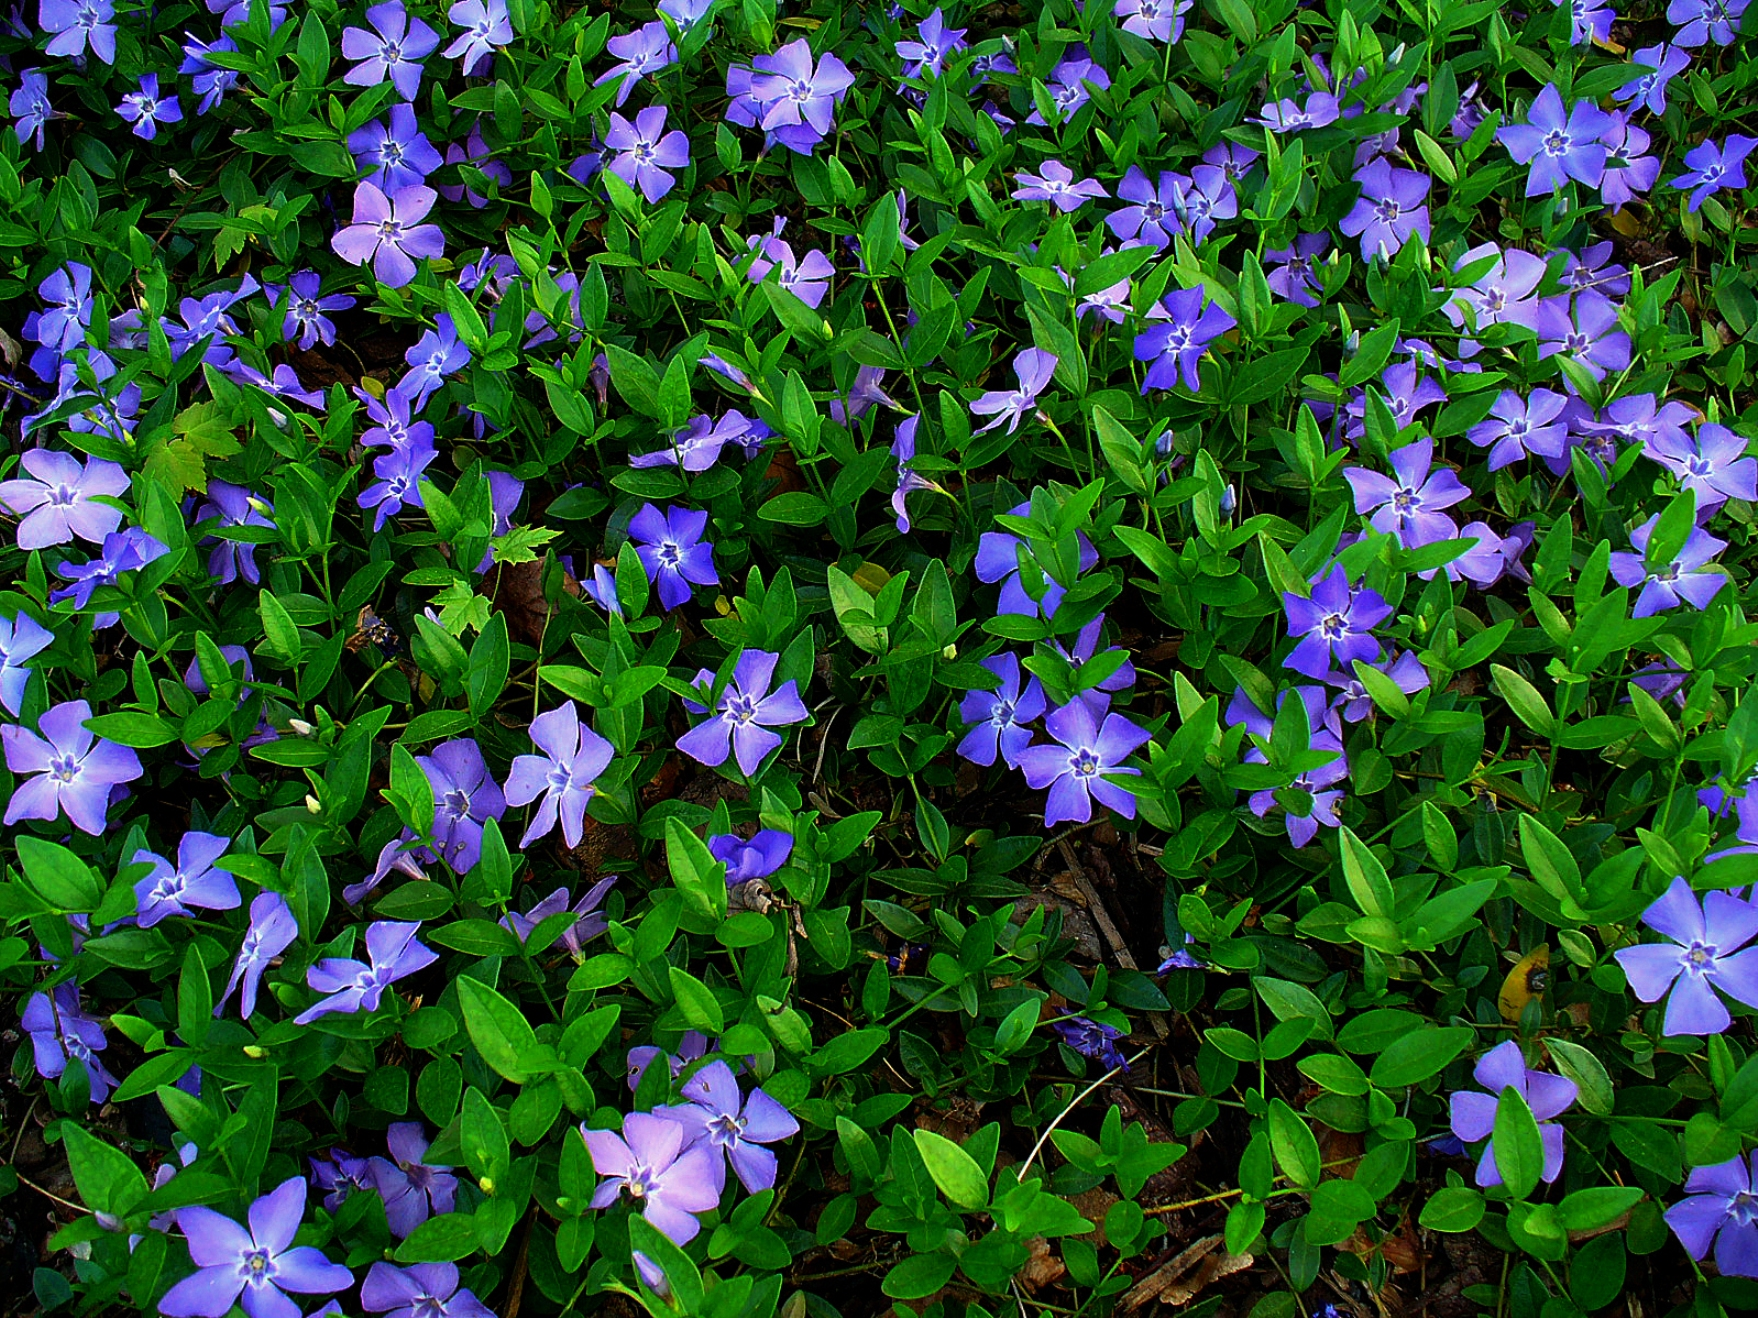 Bodendeckerpflanze File Vinca Minor 001 Jpg